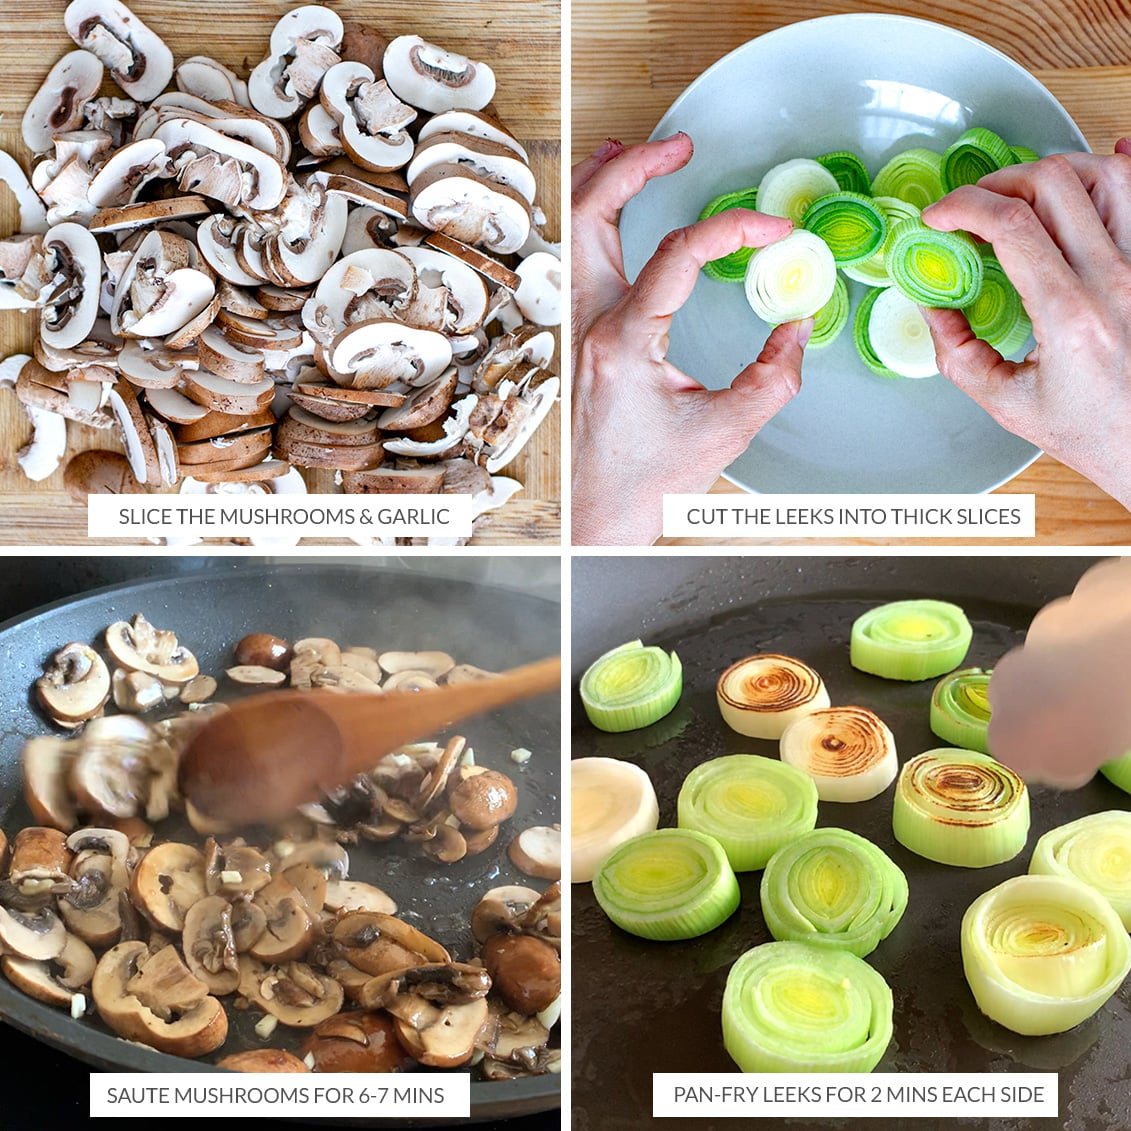 Cooking mushrooms and leeks for the tart filling